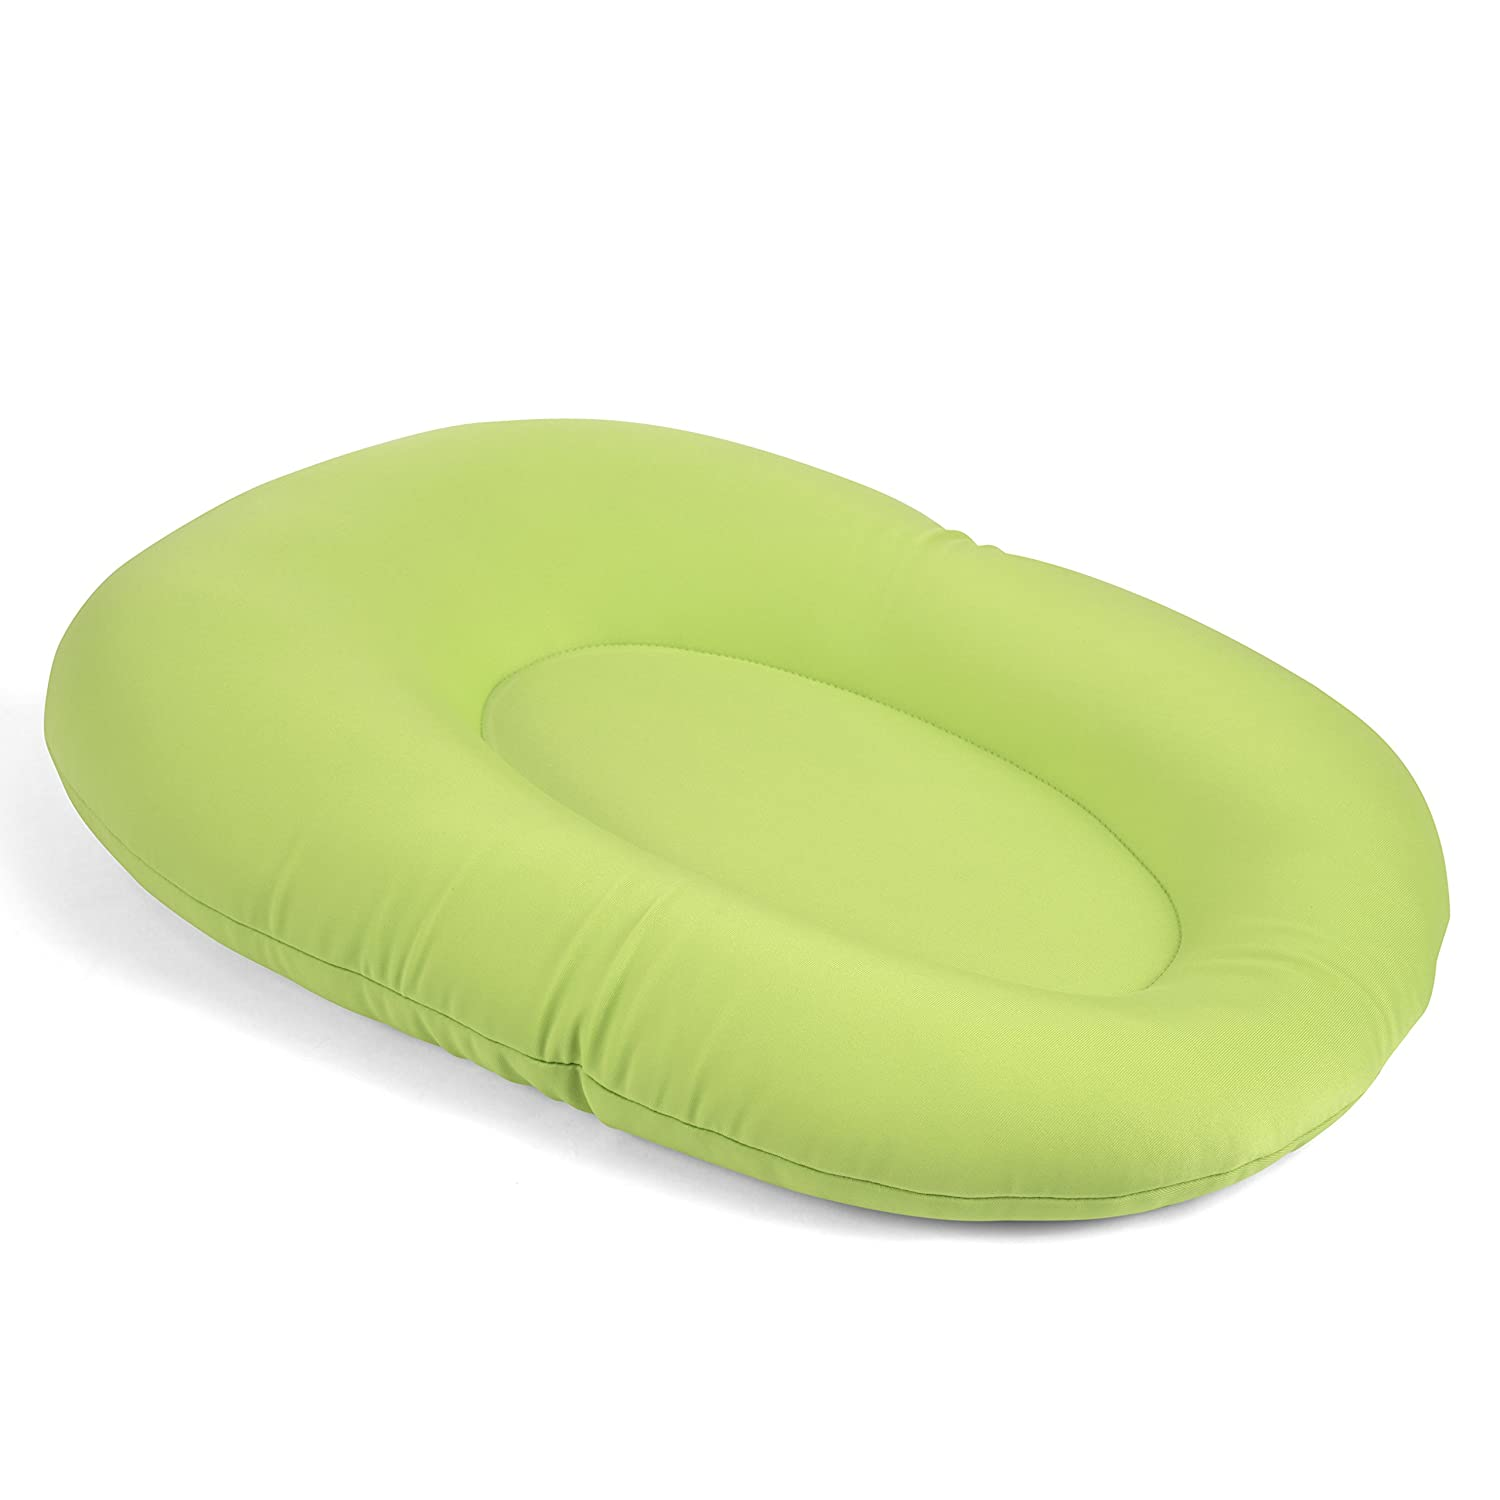 Amazon.com : Cuddles Soft Baby Bath Pillow & Lounger (Lime) : Baby